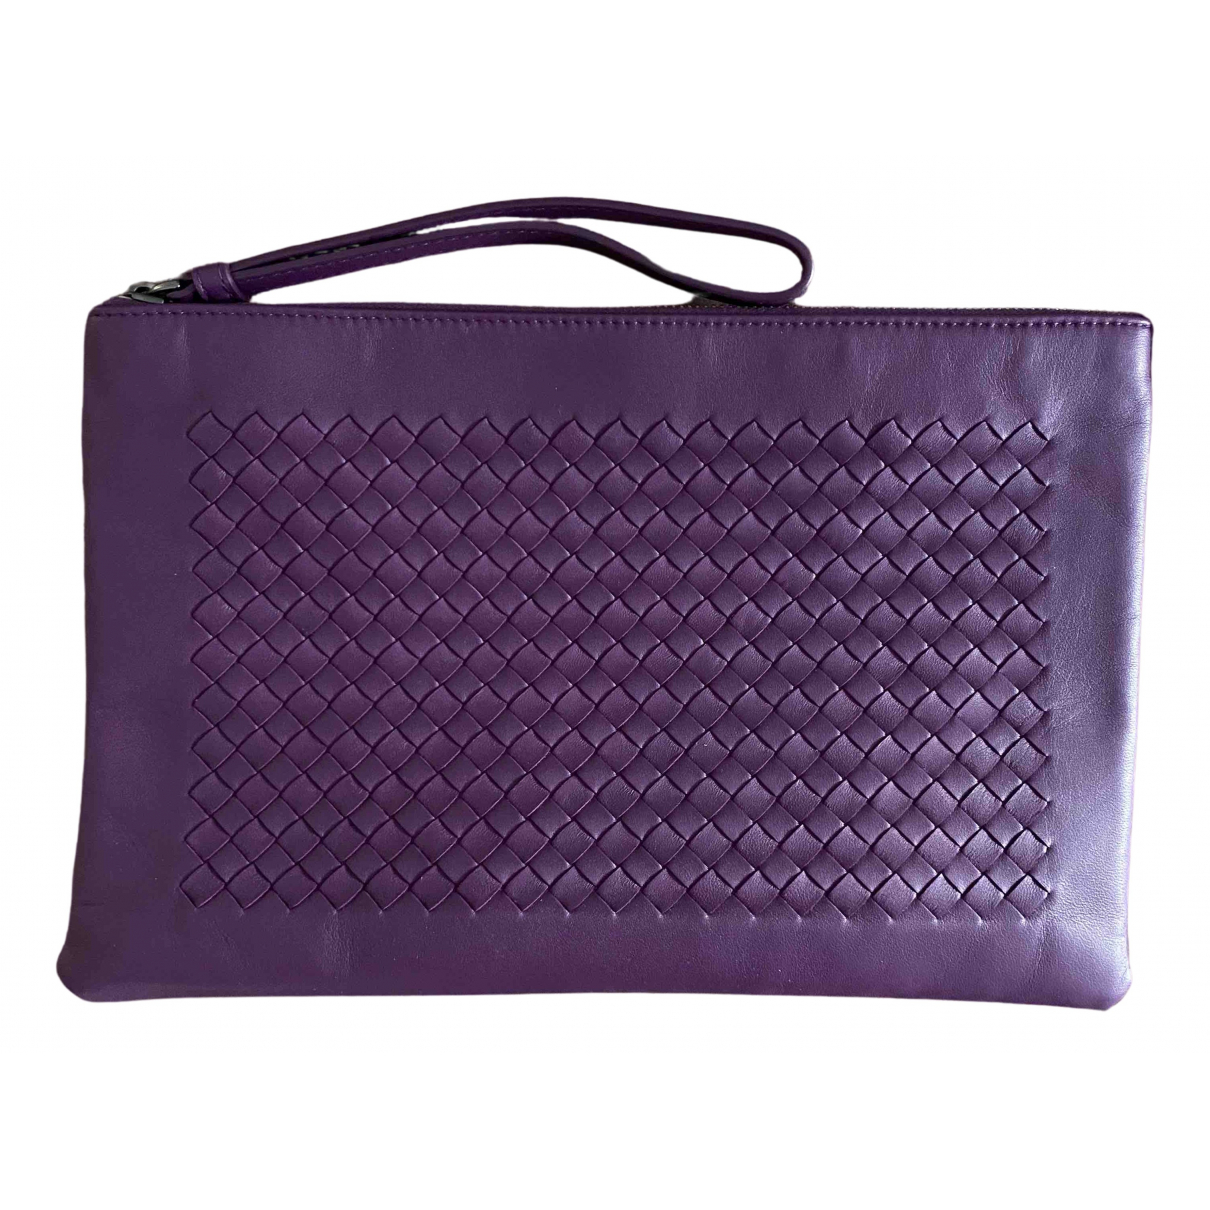 Bottega Veneta \N Clutch in  Lila Leder